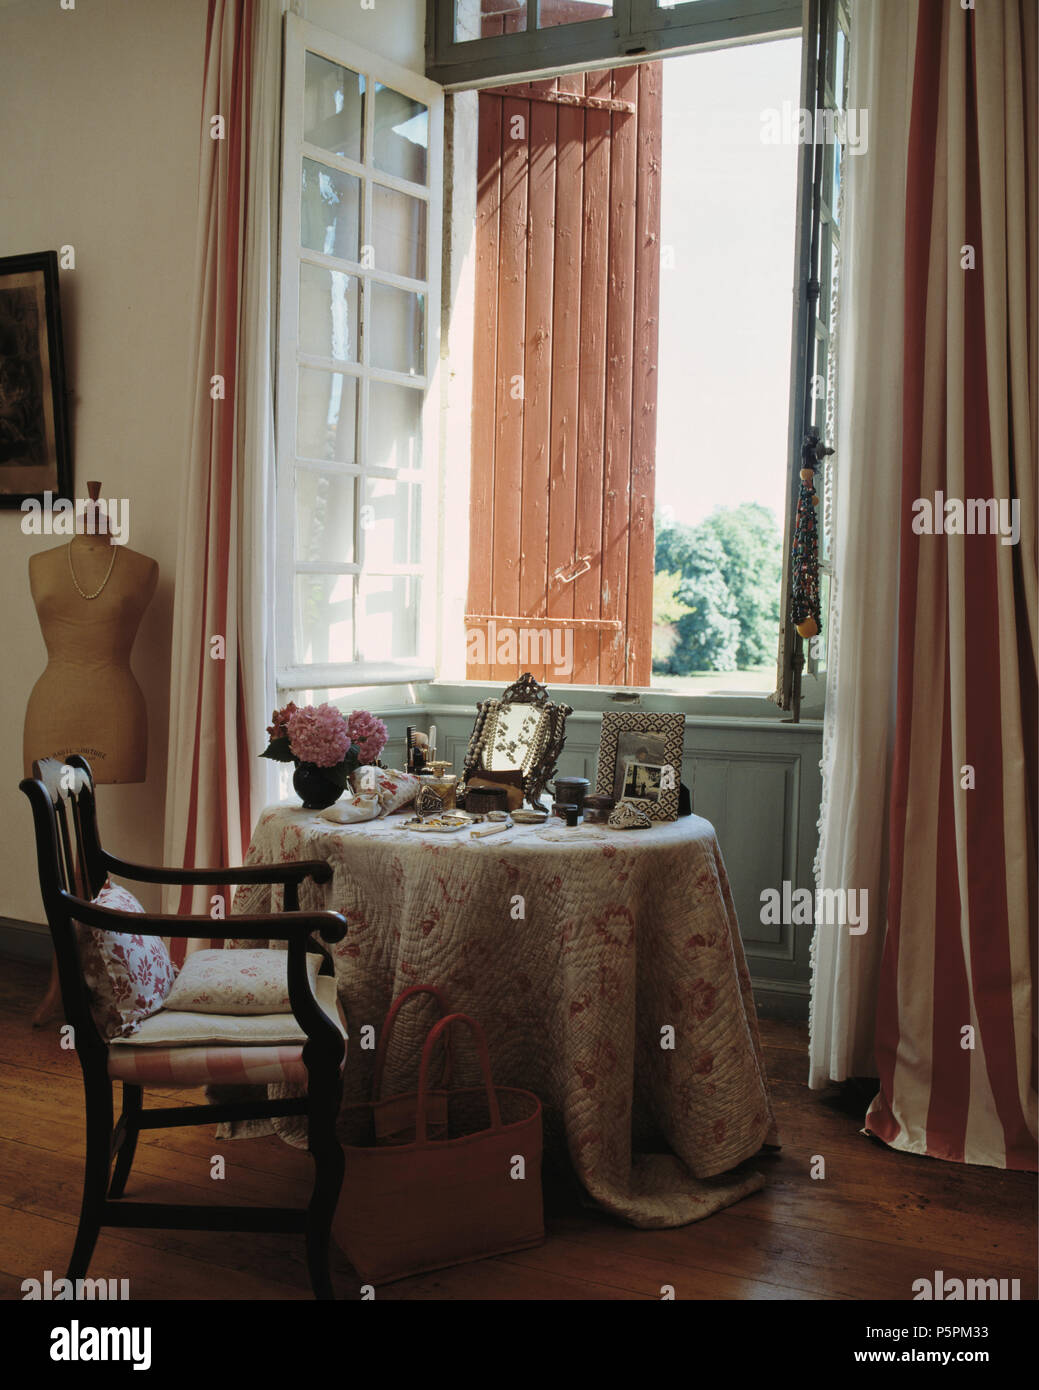 Quilted Cloth On Circular Table In Front Of Open Window With